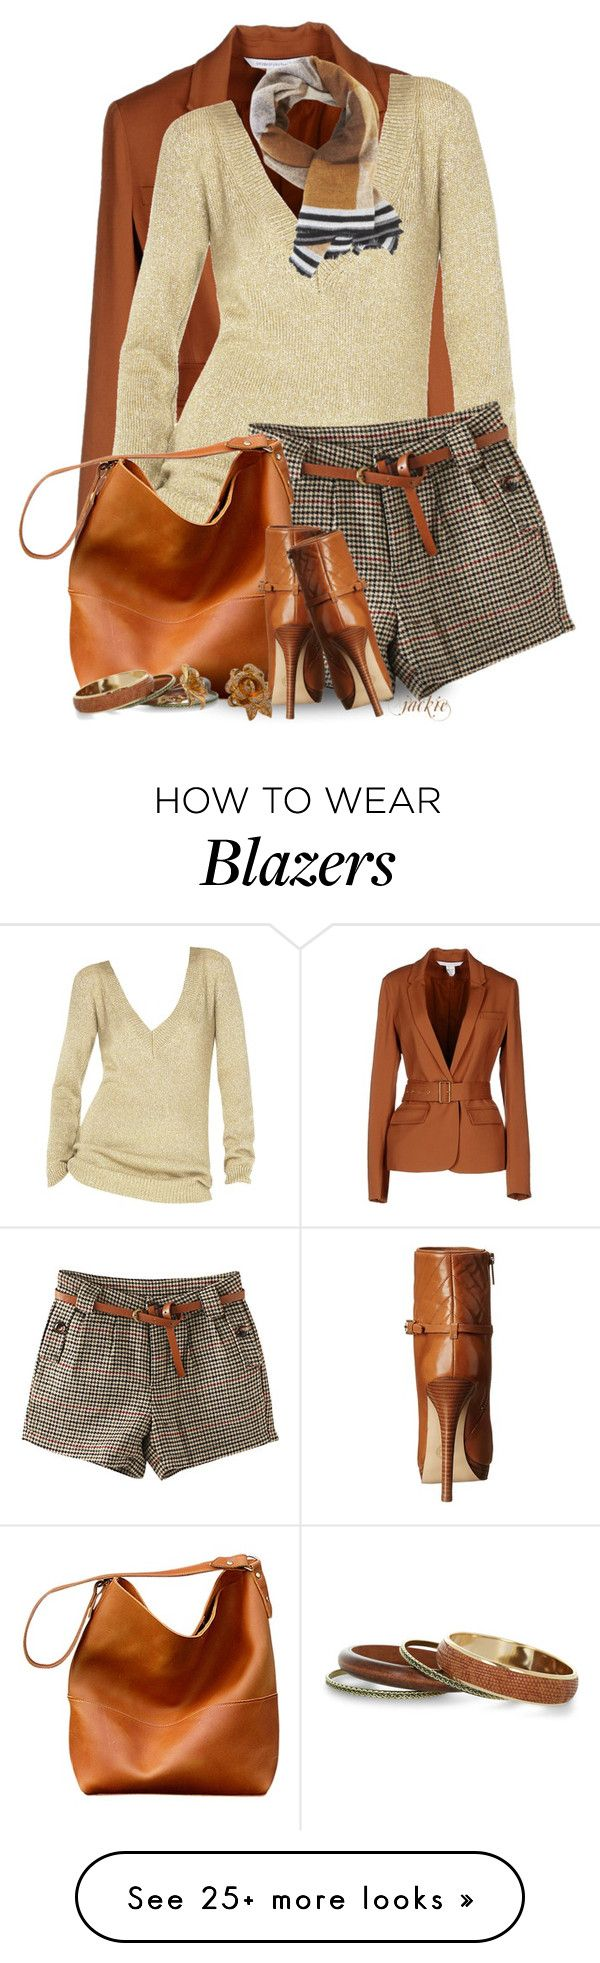 """""""Blazer, Shorts and Booties"""" by jackie22 on Polyvore featuring Diane Von Furstenberg, Michael Kors, BCBGMAXAZRIA and MICHAEL Michael Kors"""